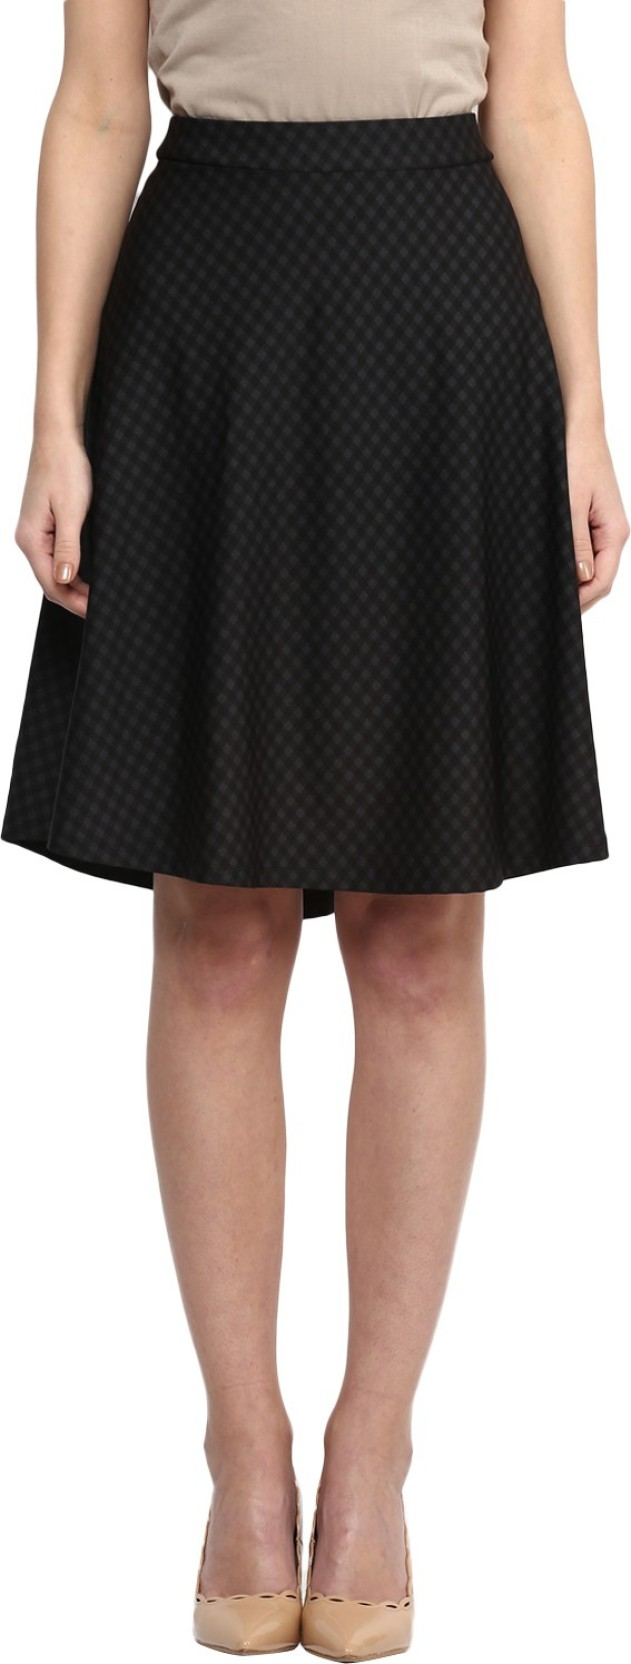 f972de990050 Annabelle by Pantaloons Self Design Women's Gathered Black Skirt. ADD TO  CART